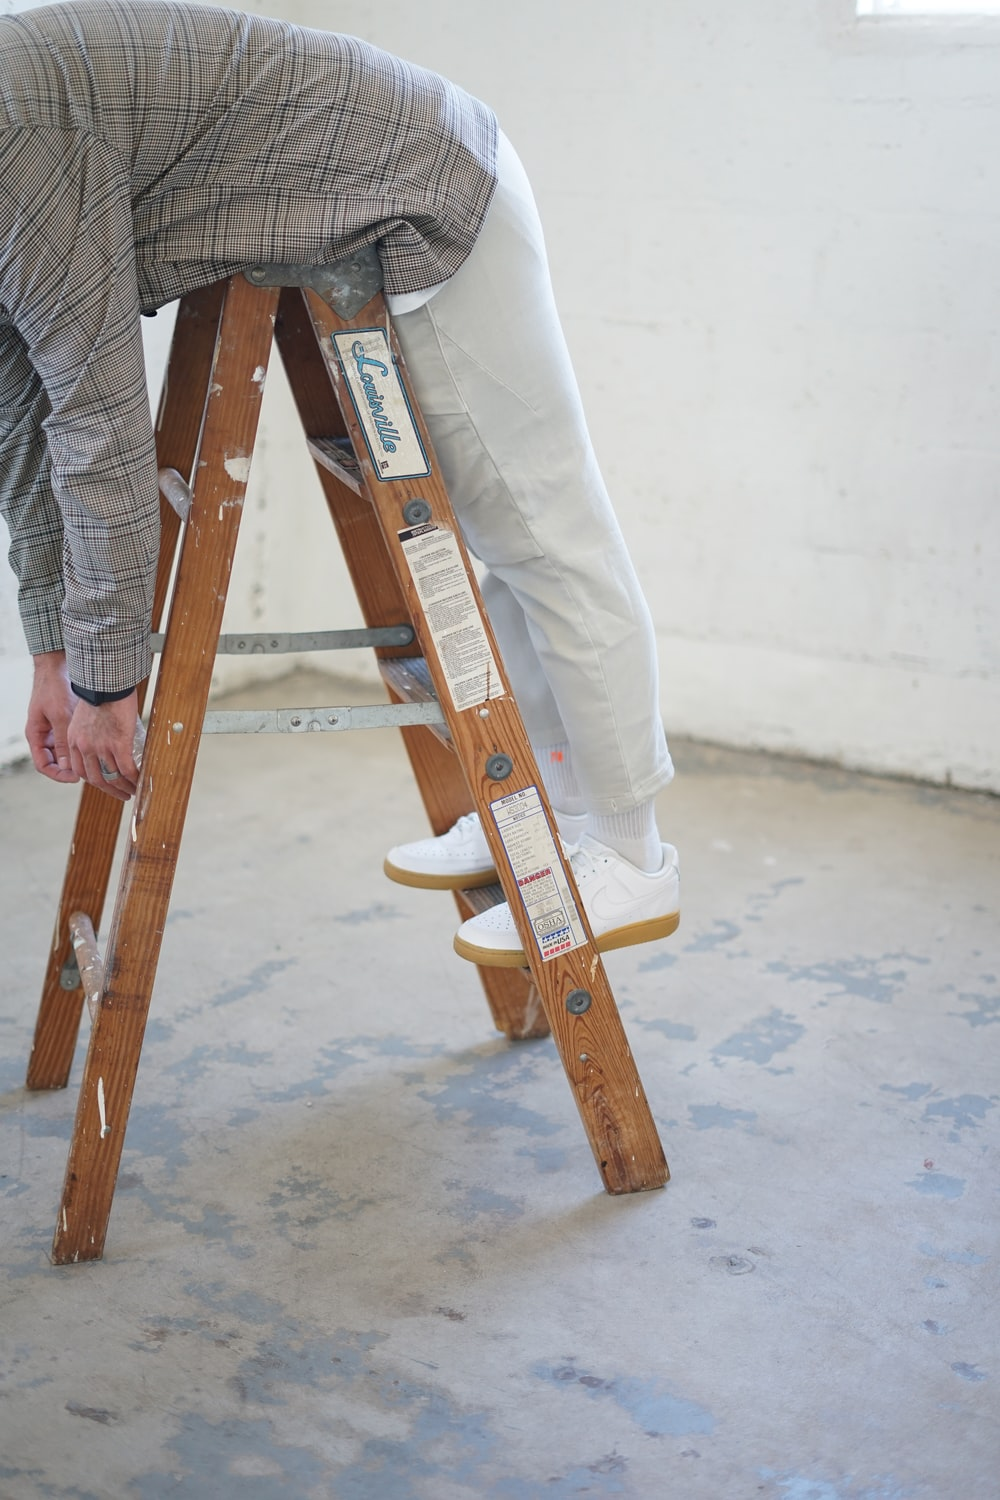 person in gray and white plaid dress shirt and blue denim jeans holding brown wooden skateboard